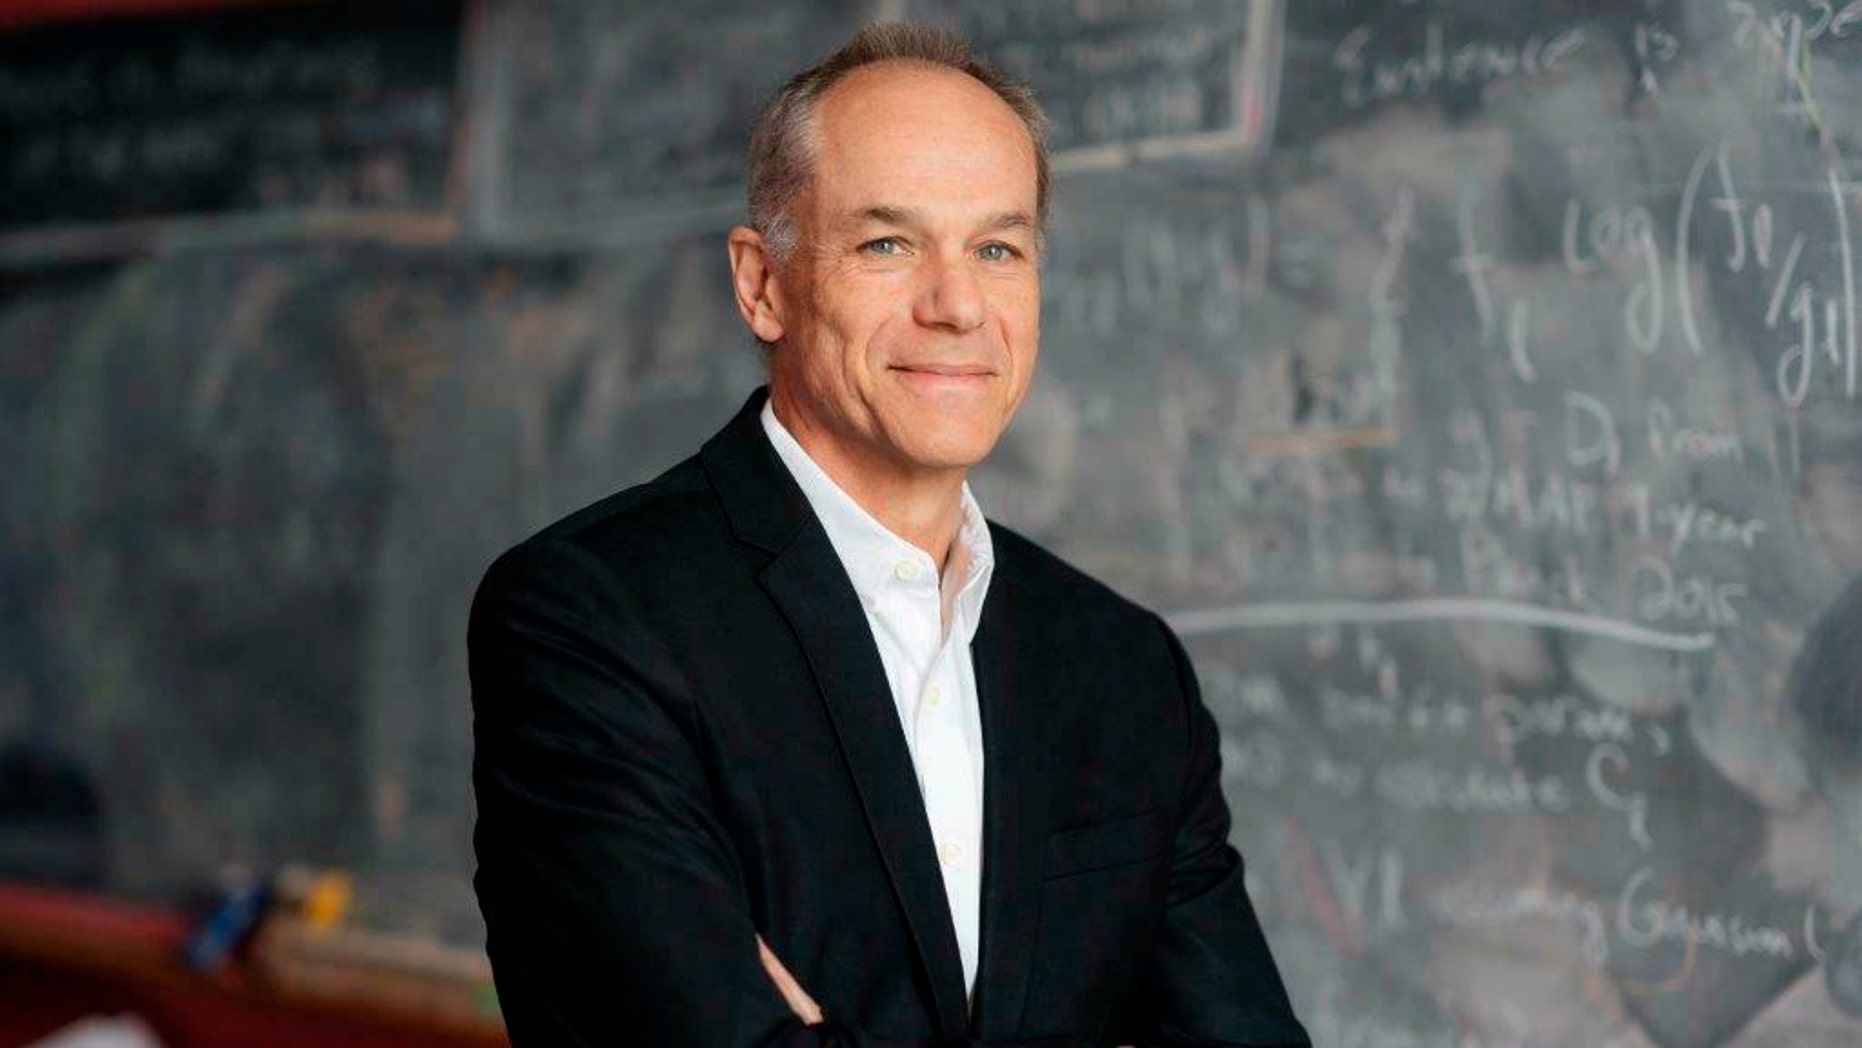 This Feb. 27, 2019, photo provided by Dartmouth College shows physics professor Marcelo Gleiser at Dartmouth College in Hanover, N.H. Gleiser, who has written books on topics ranging from the origin of the universe to how science engages with spirituality, is the winner of the 2019 Templeton Prize, one of the world's leading religion prizes. (Eli Burakian/Dartmouth College via AP)